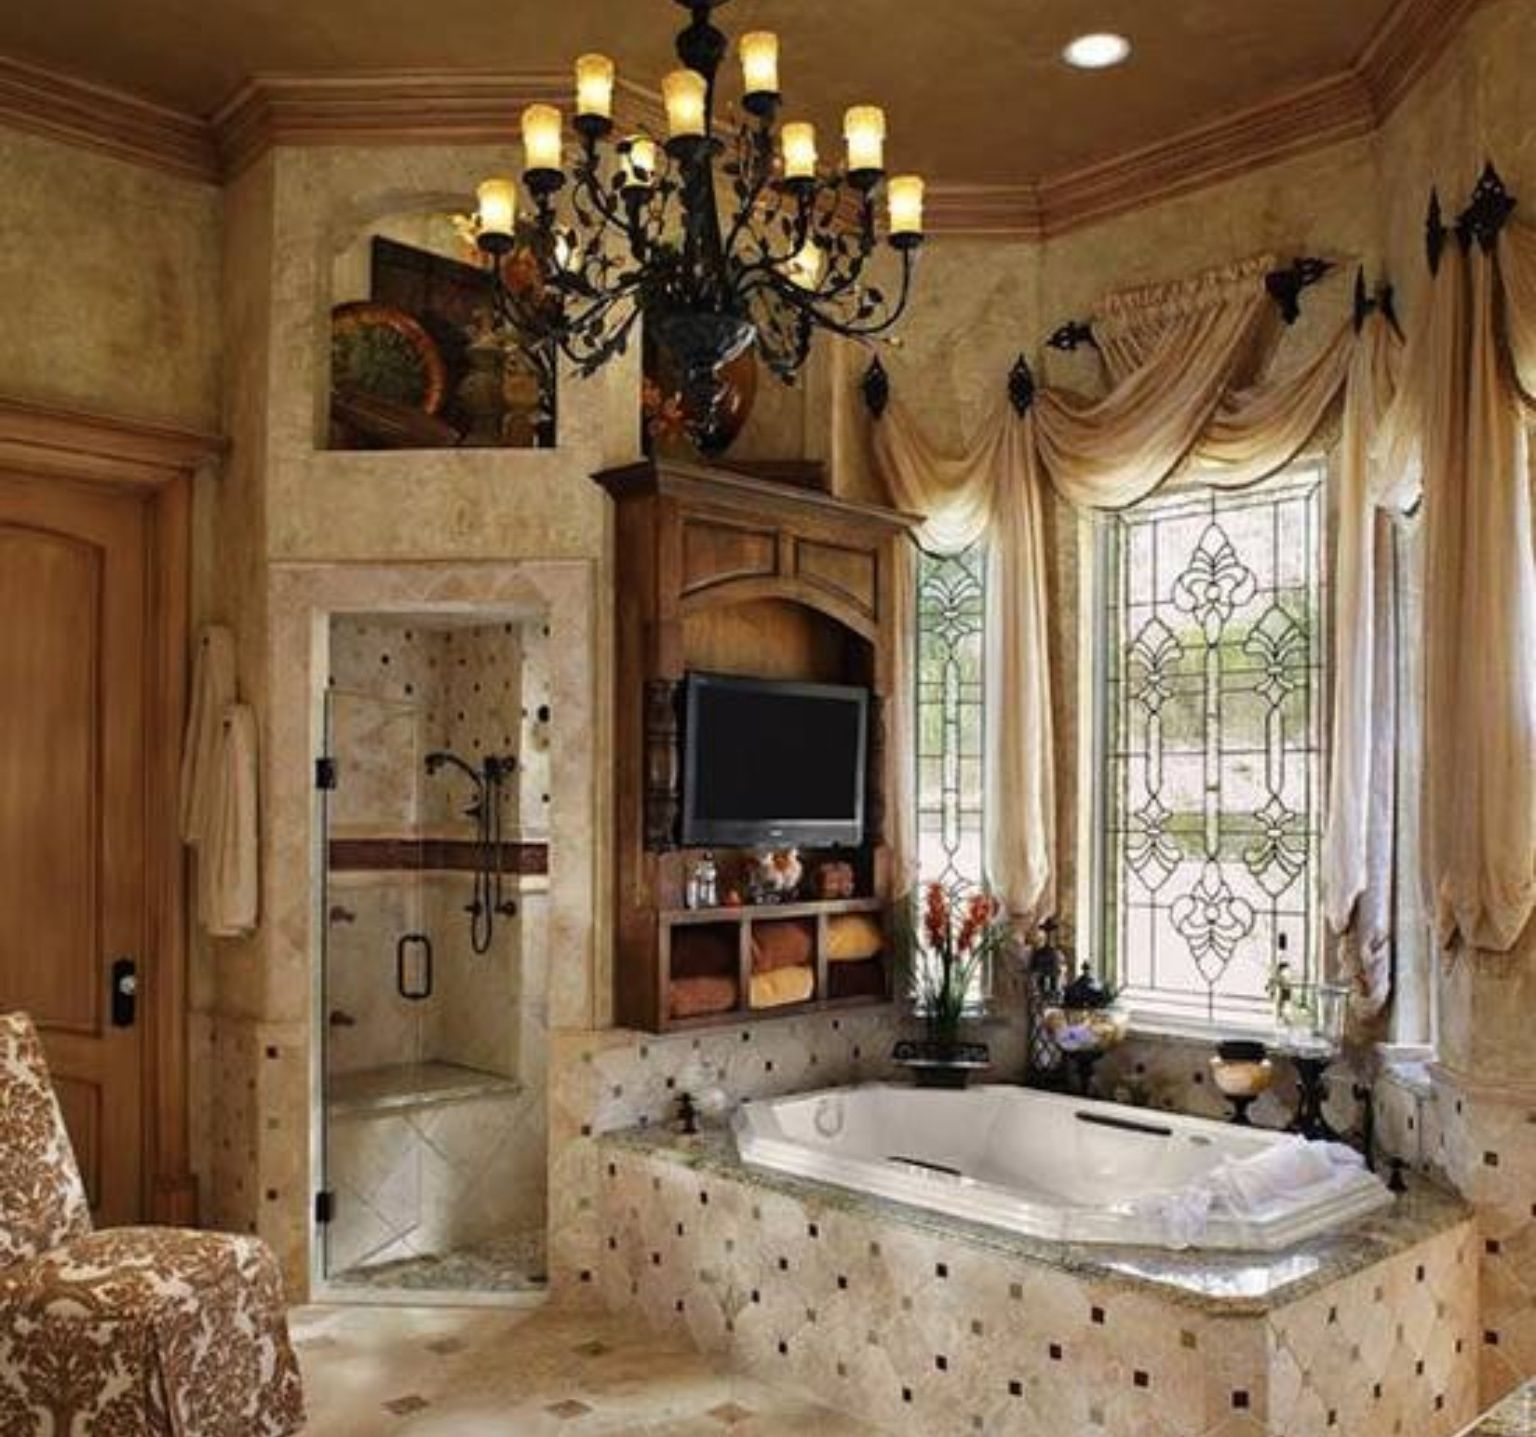 Luxury bathroom curtains - Gorgeous Bathroom Window Treatments